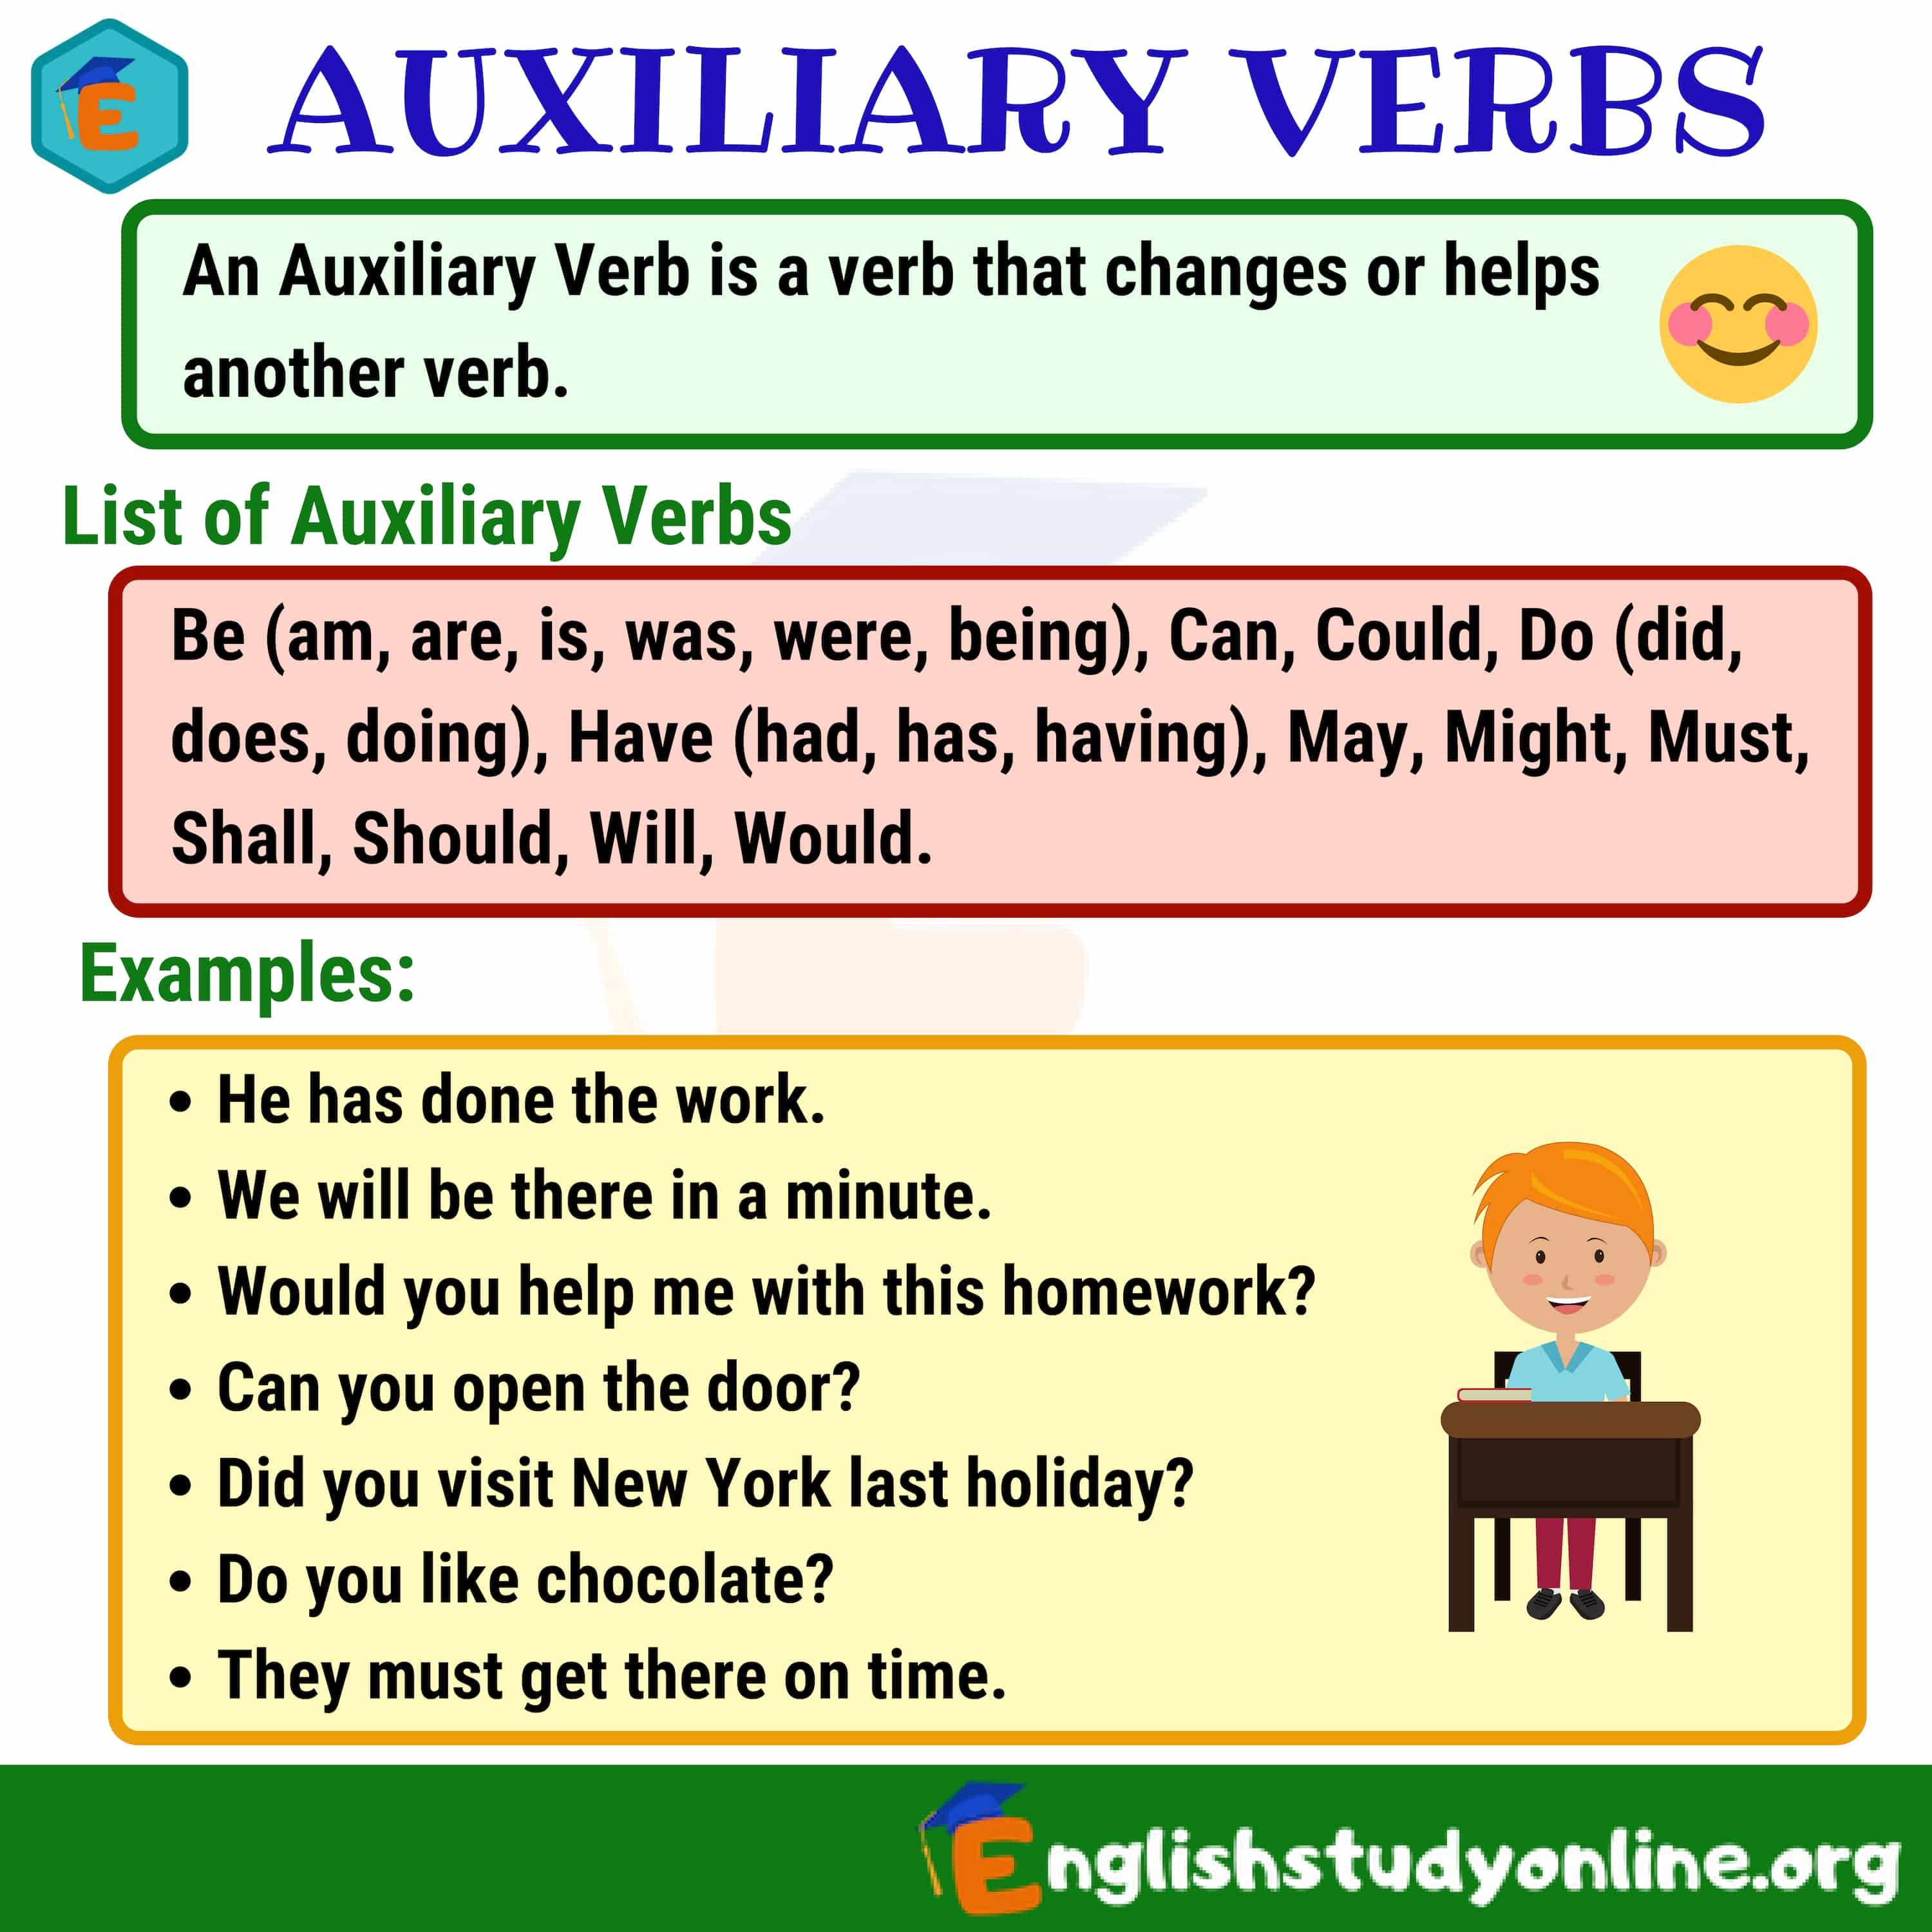 Grammar Lessons Auxiliary Verbs In English English Study Online English Study English Verbs Learn English Words [ 3000 x 3000 Pixel ]